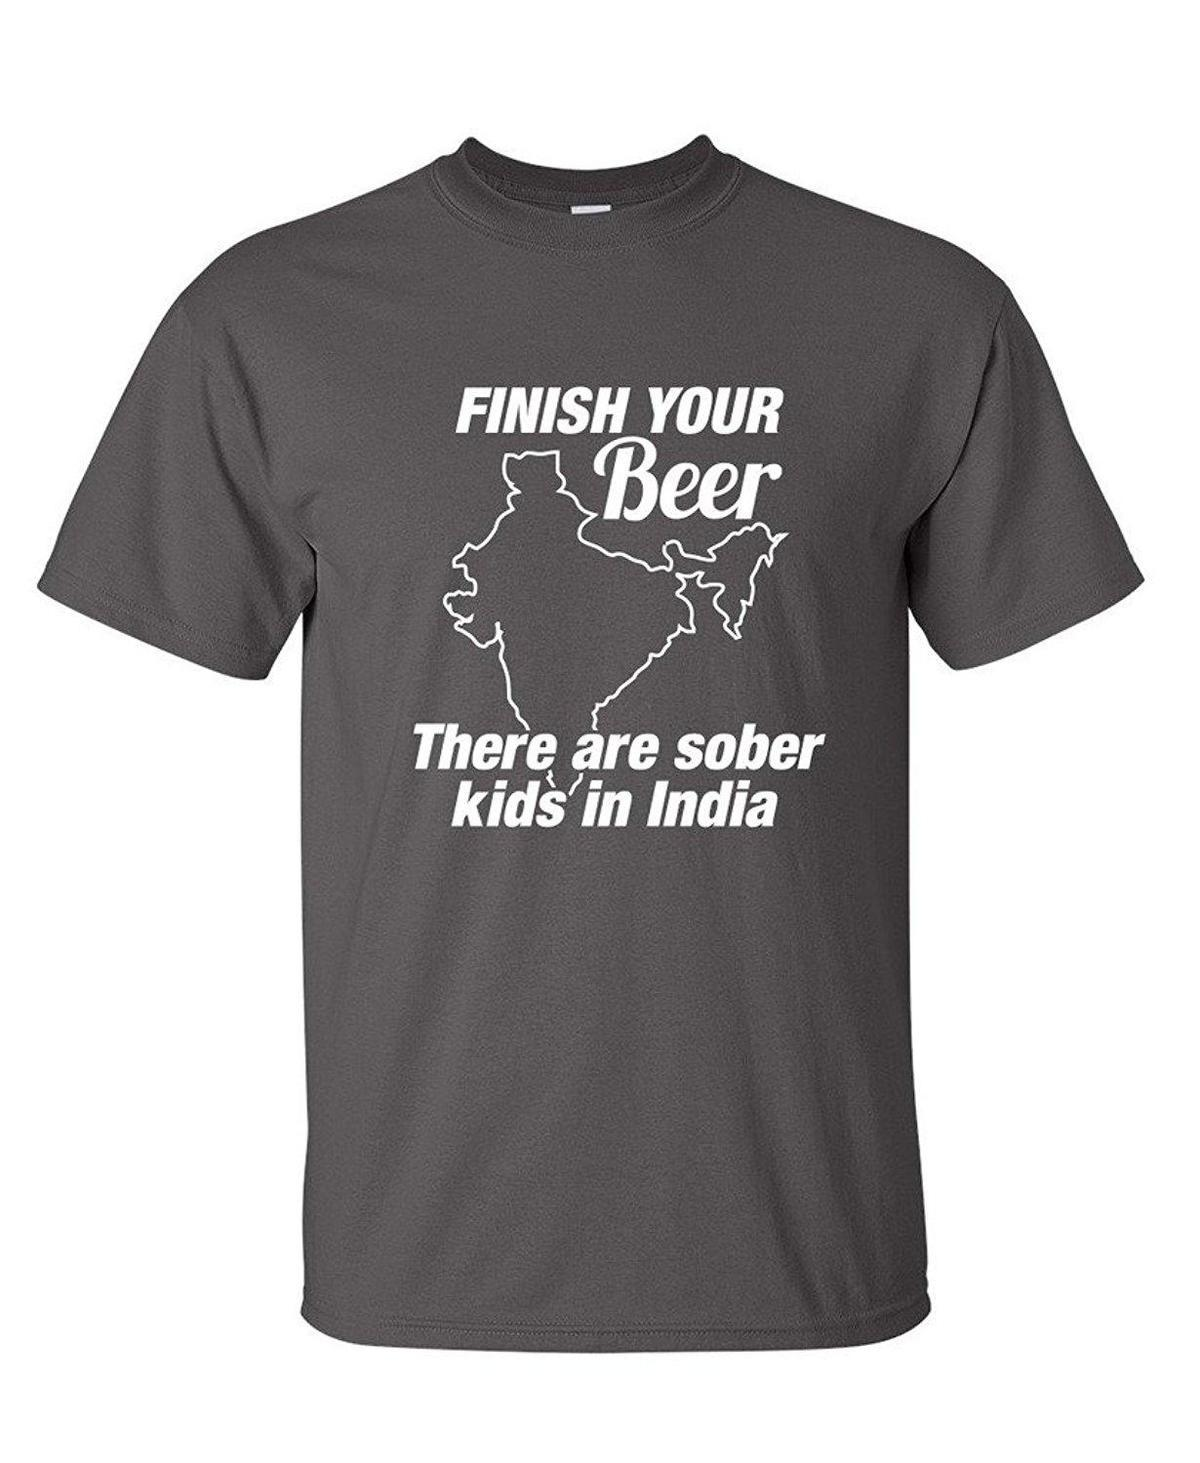 ce9259a2 Finish Your Beer There Are Sober Kids In India College Mens Funny T Shirt  White T Shirts Offensive T Shirts From Amesion2402, $12.08| DHgate.Com